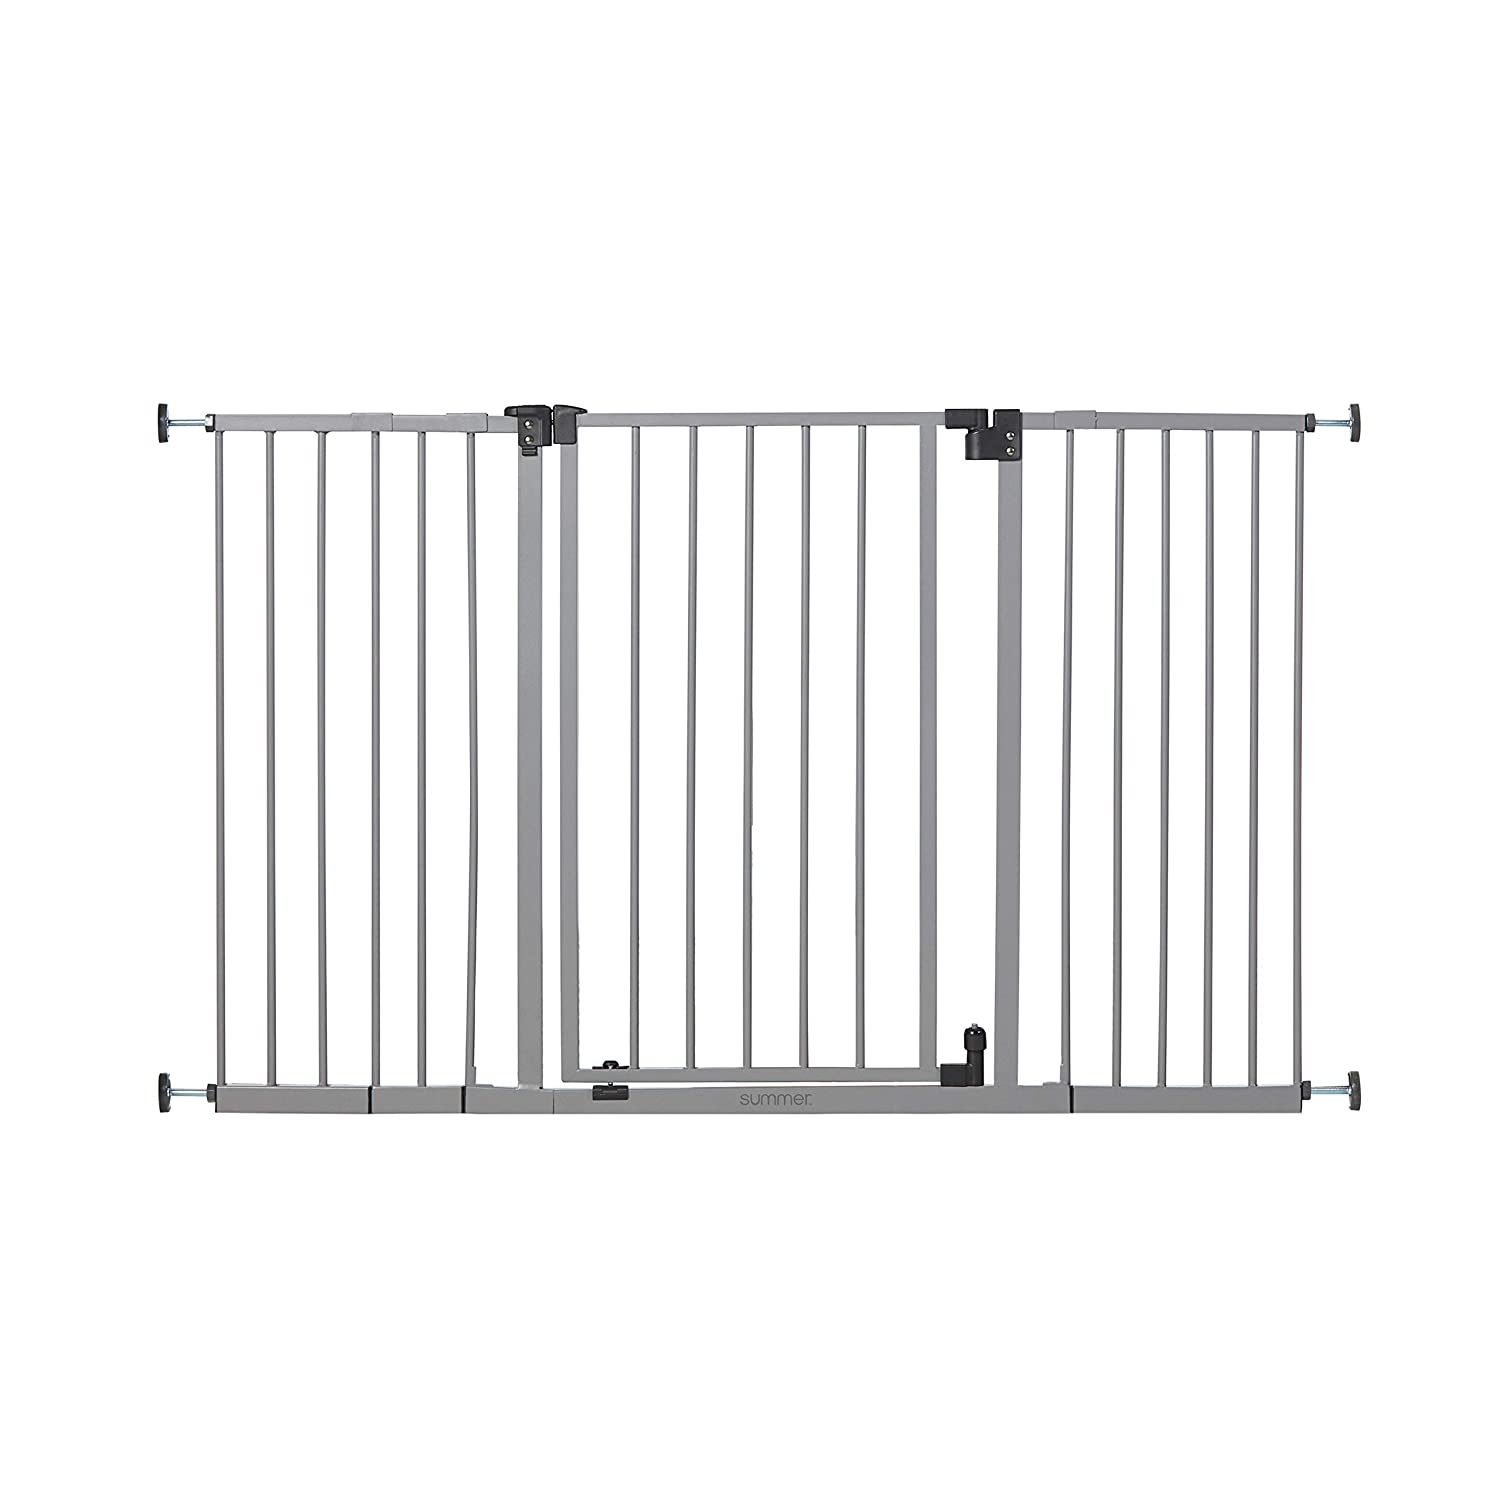 Summer Infant Secure Space Extra-Wide Safety Gate, 28.5 - 52 Inch Wide, for Doorways & Stairways, Auto-Close & Hold-Open, Grey, Slate